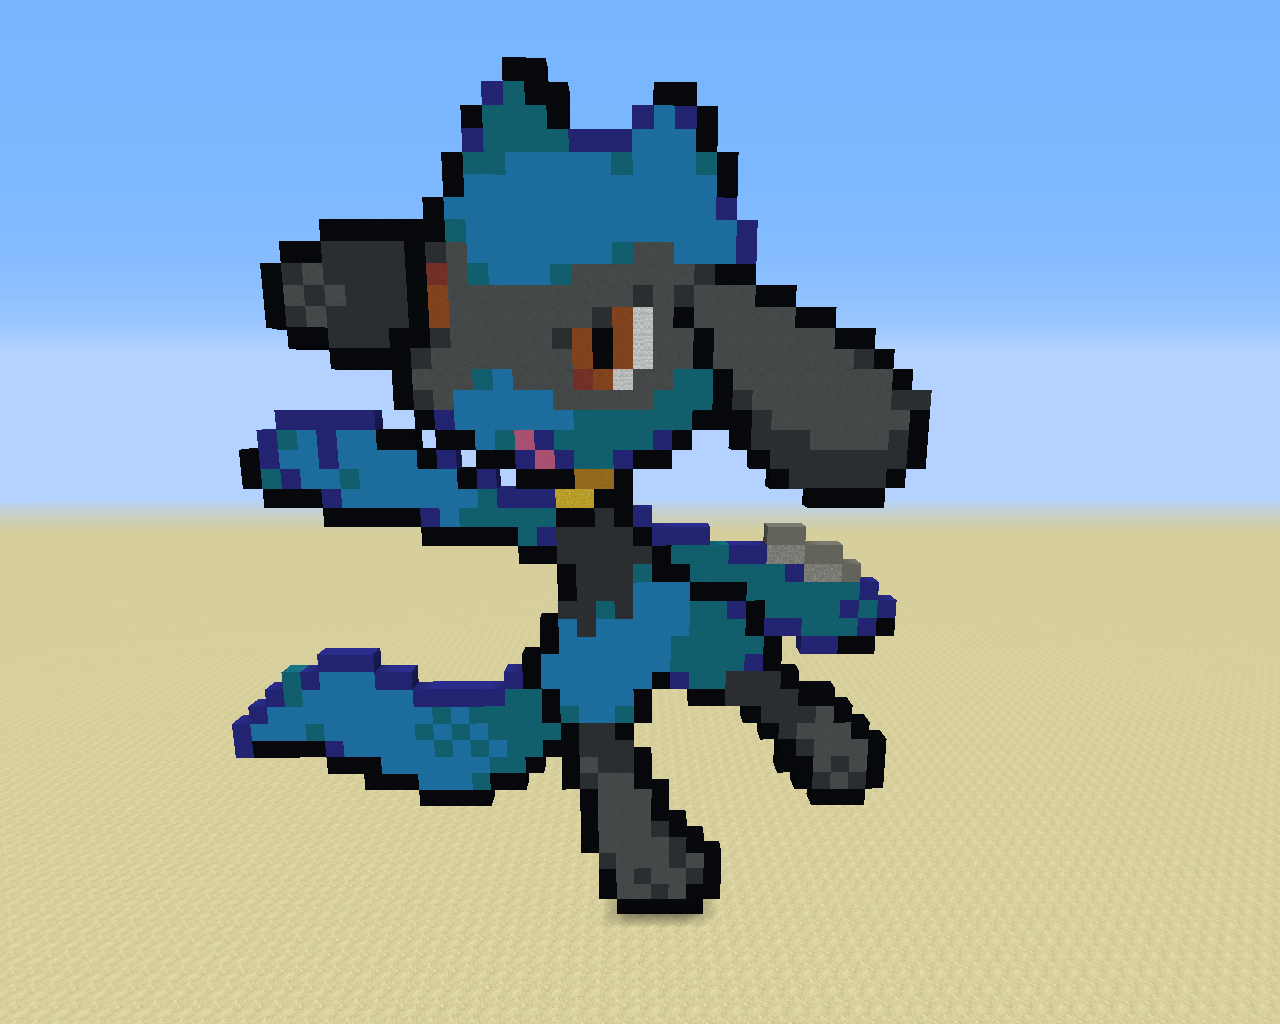 A sprite of Riolu. I can't remember if this was from Diamond/Pearl/Platinum or Black/White/2.